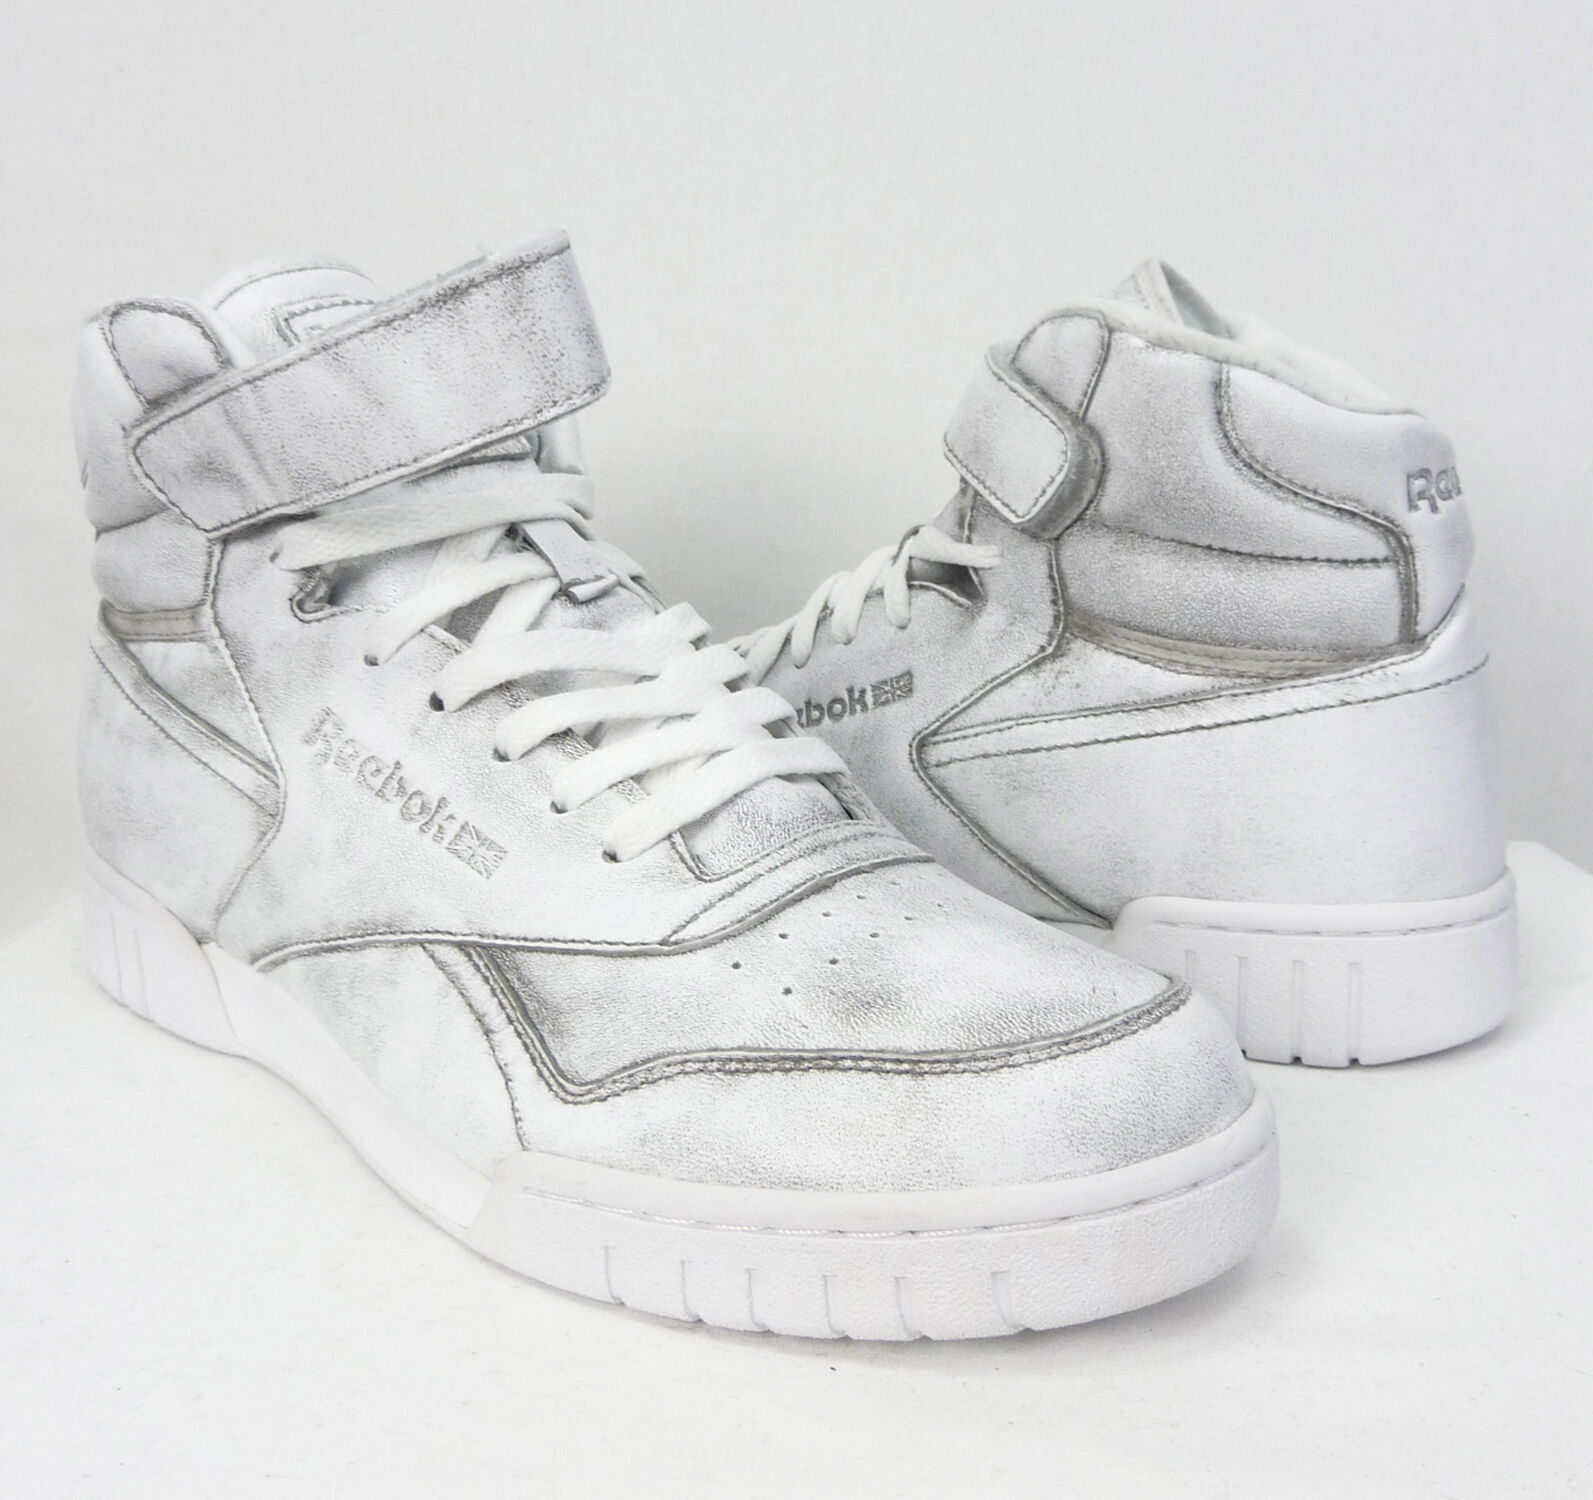 NEW REEBOK MENS SHOES EX-O-FIT PLUS HI VINTAGE SNEAKERS SNEAKERS SNEAKERS DEADSTOCK SIZE 9 US 493162